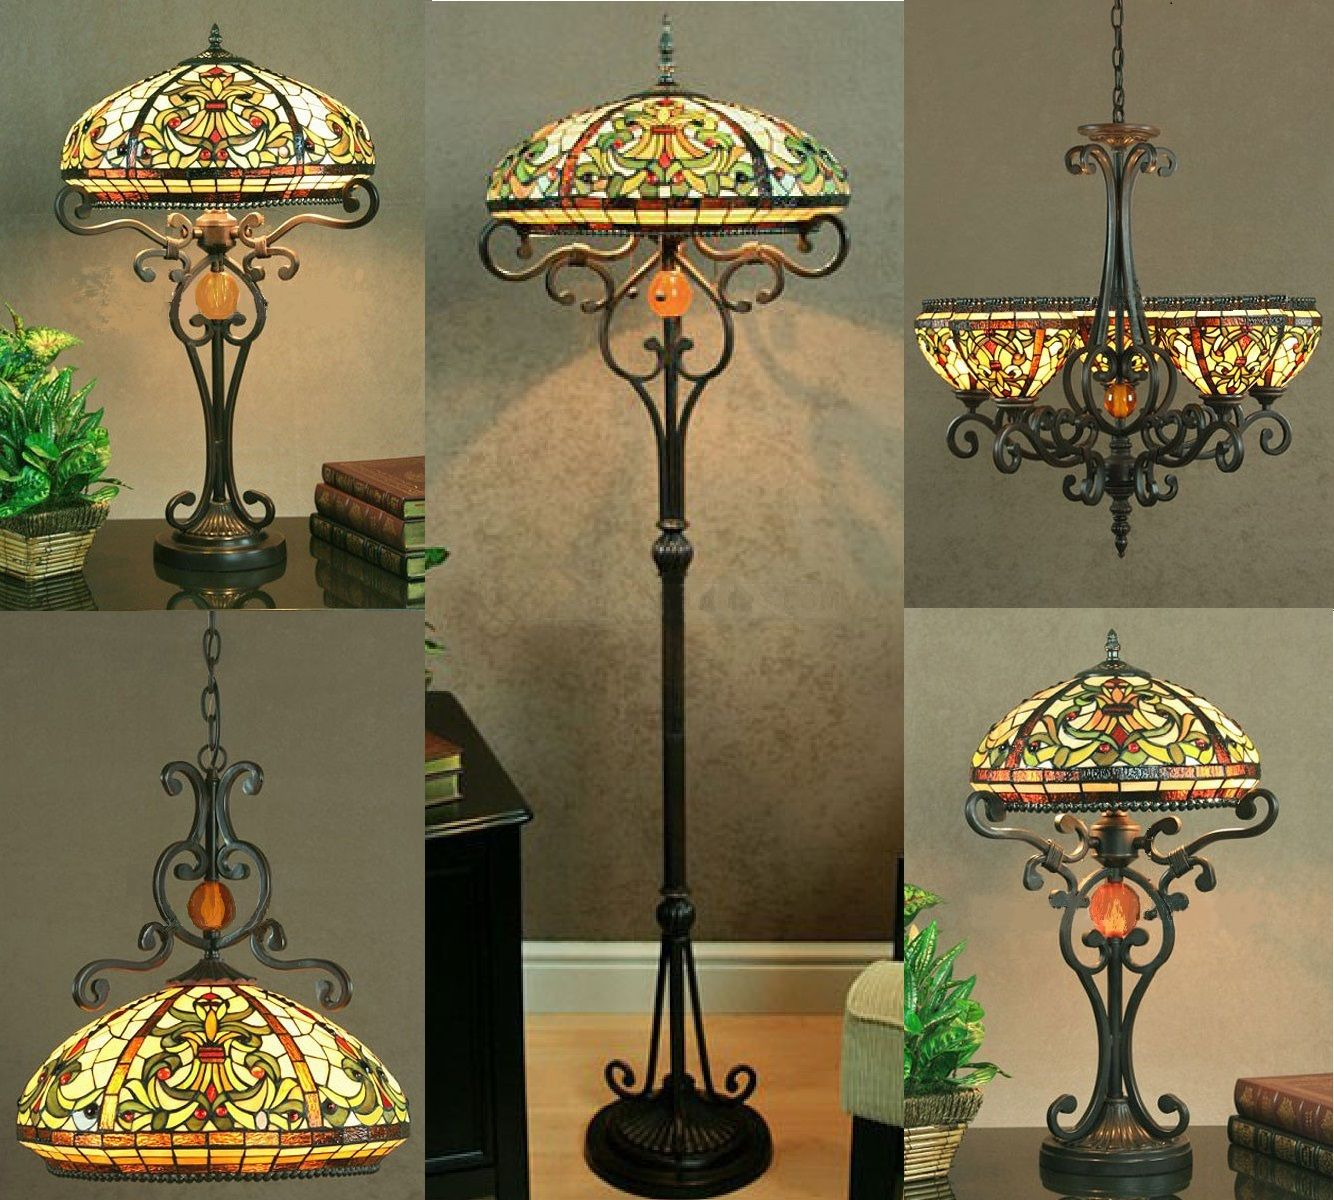 Tablelamps Tiffanylighting Floor Lamps Http Tiffanylightingcompany Co Uk Welcome To The Tiffany Lighting Company It S Well Known In Interior Design